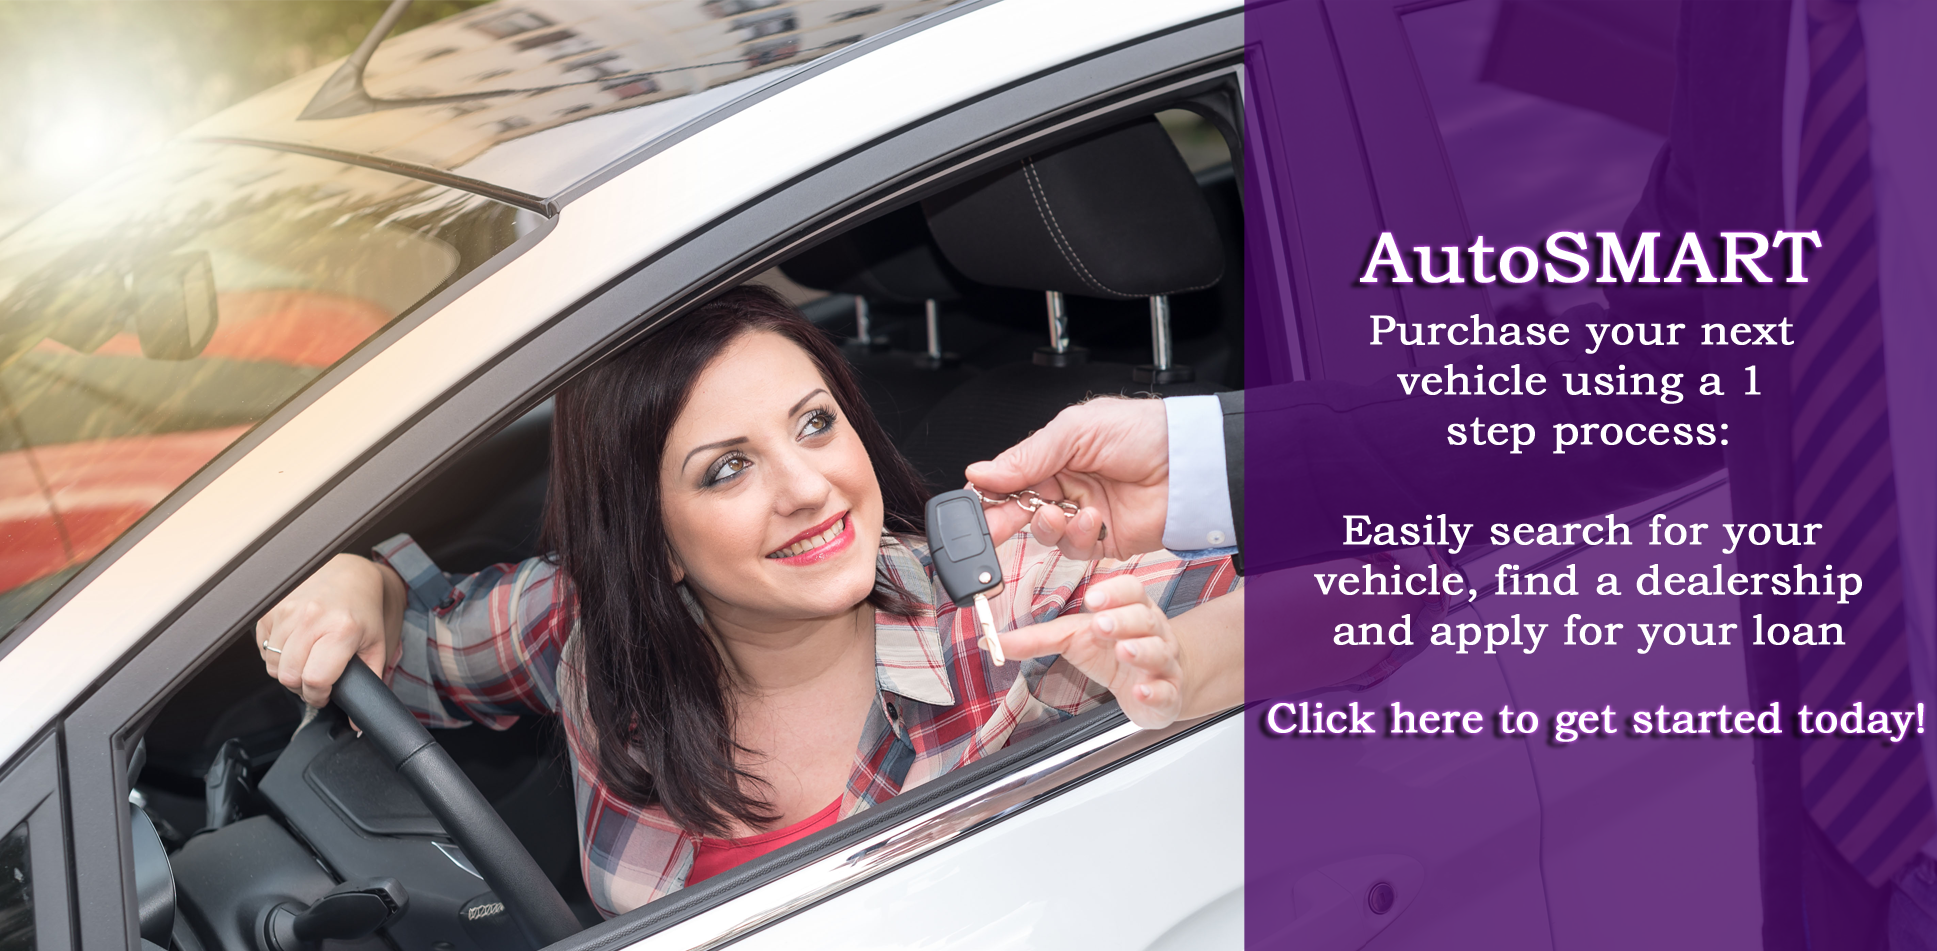 image link to AutoSmart vehicle purchasing